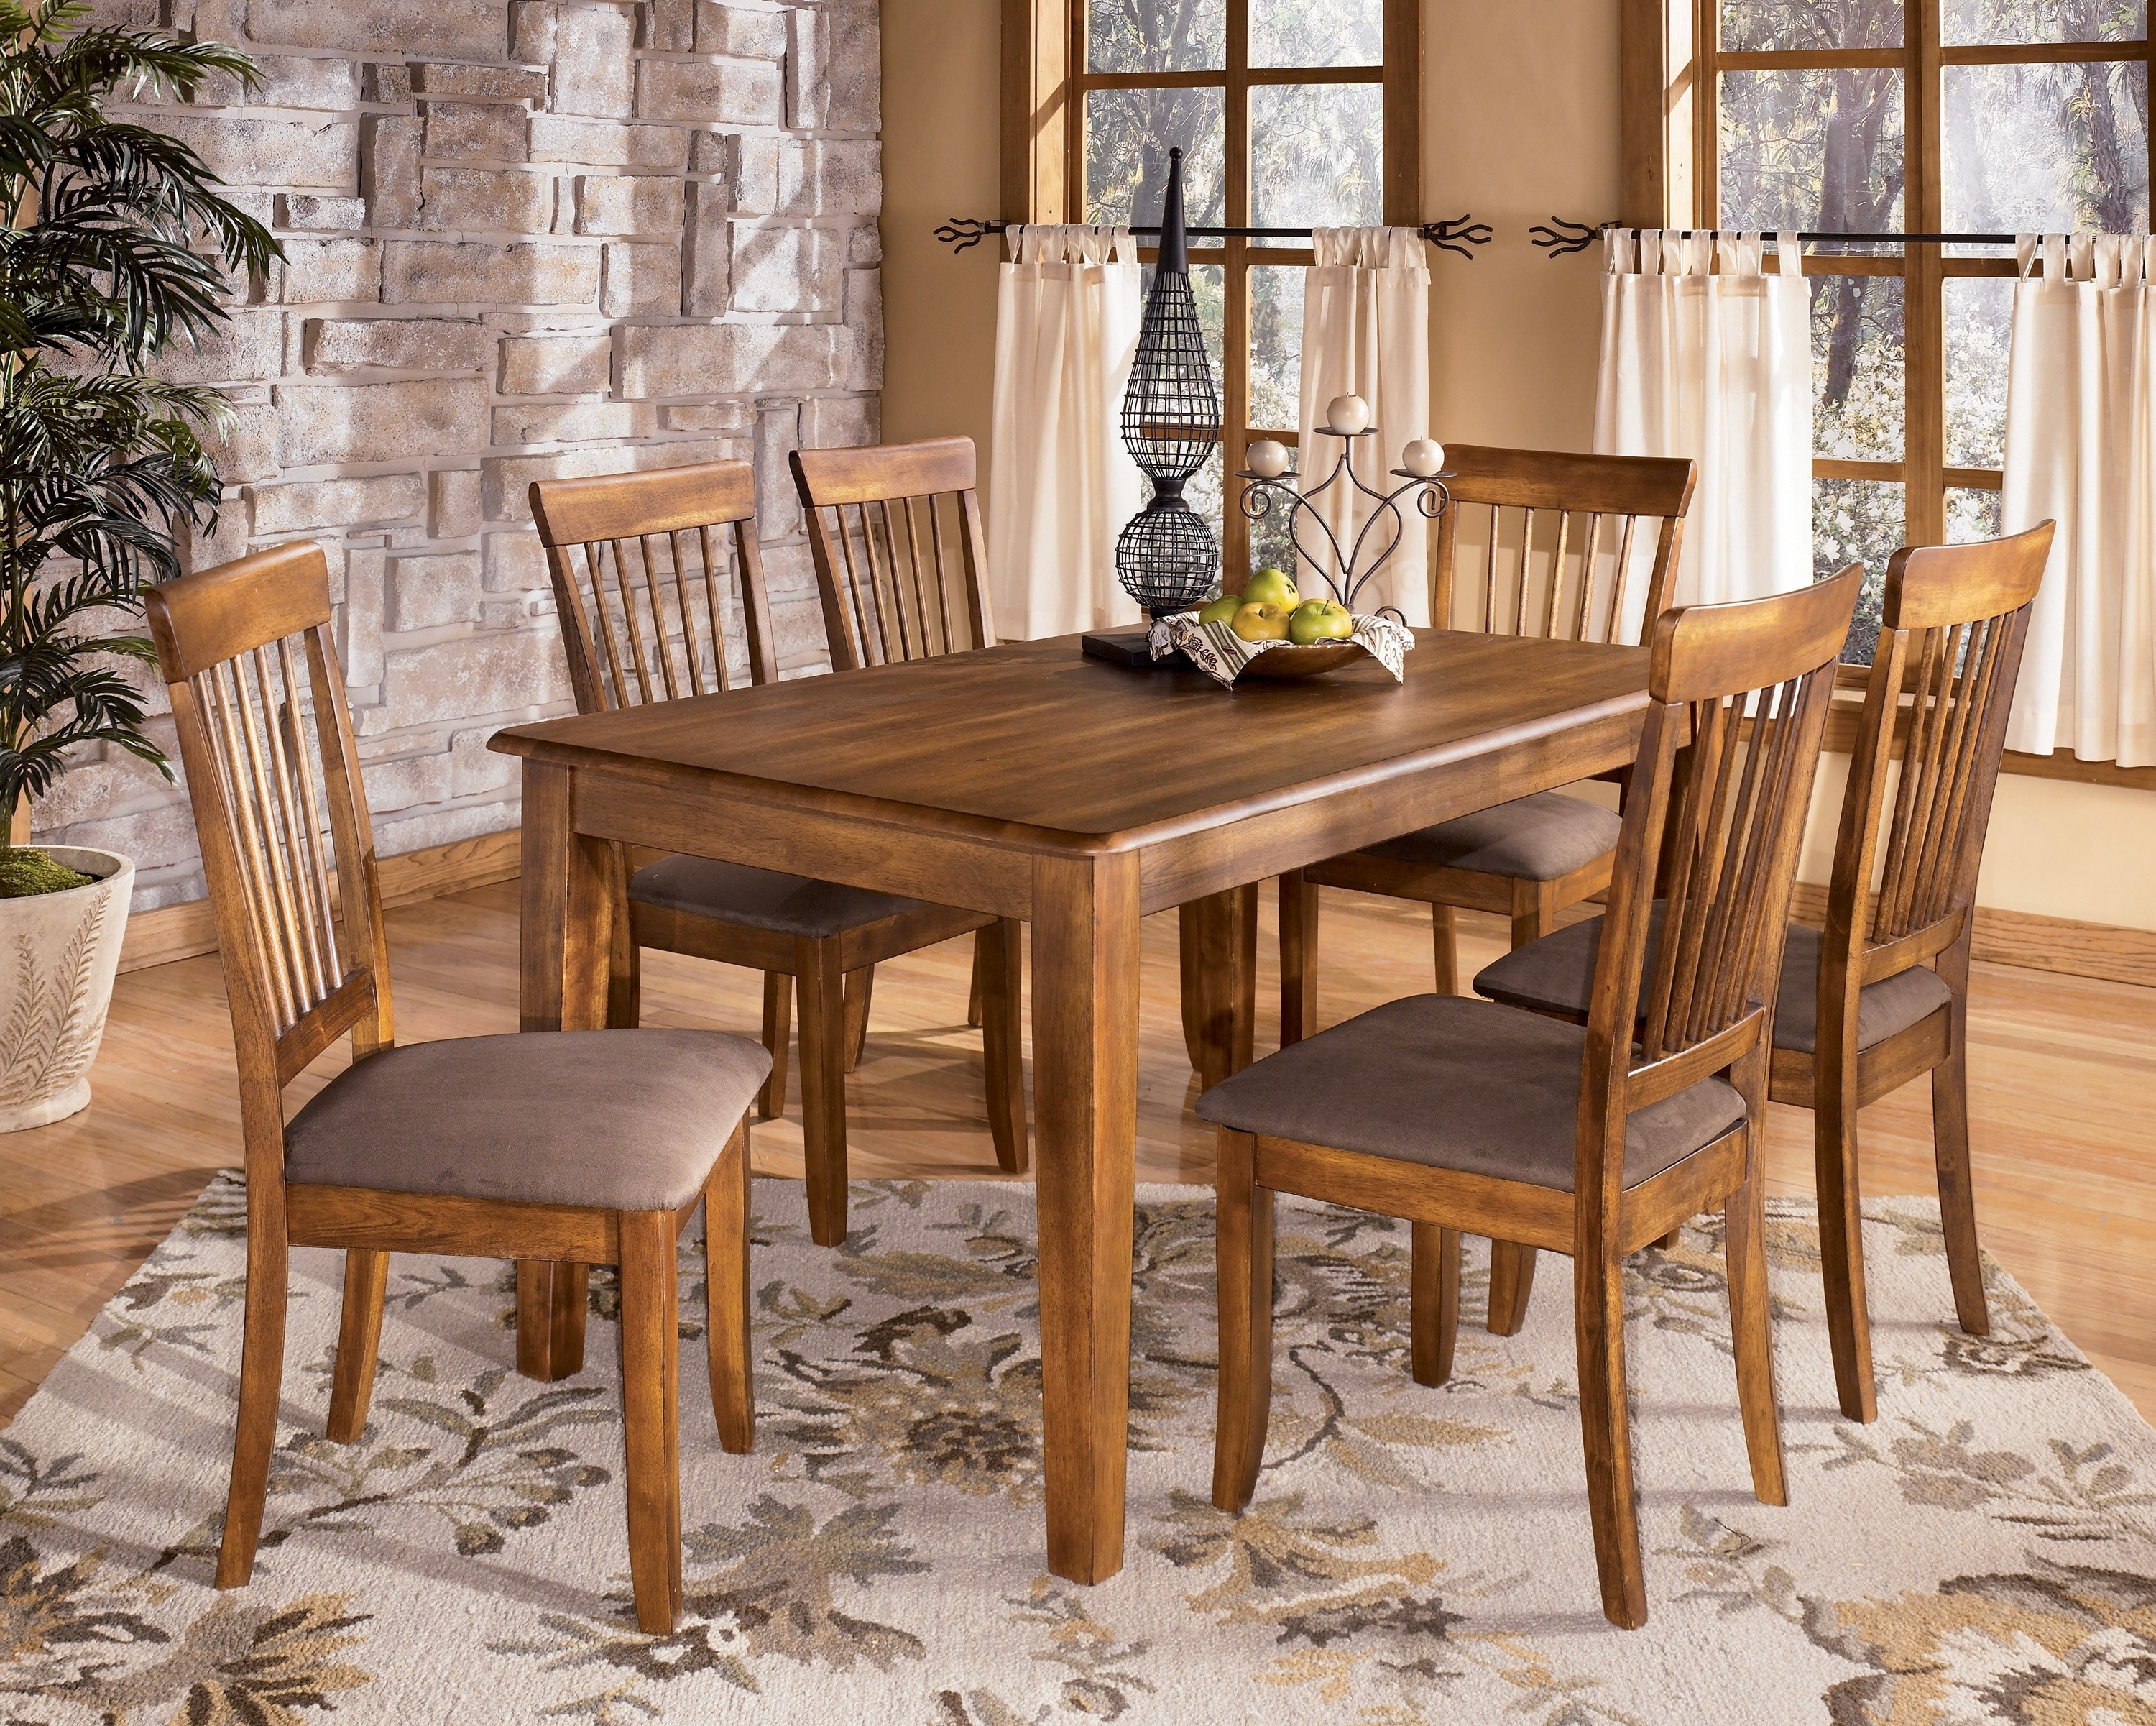 Top 20 Leon 7 Piece Dining Sets Dining Room Ideas